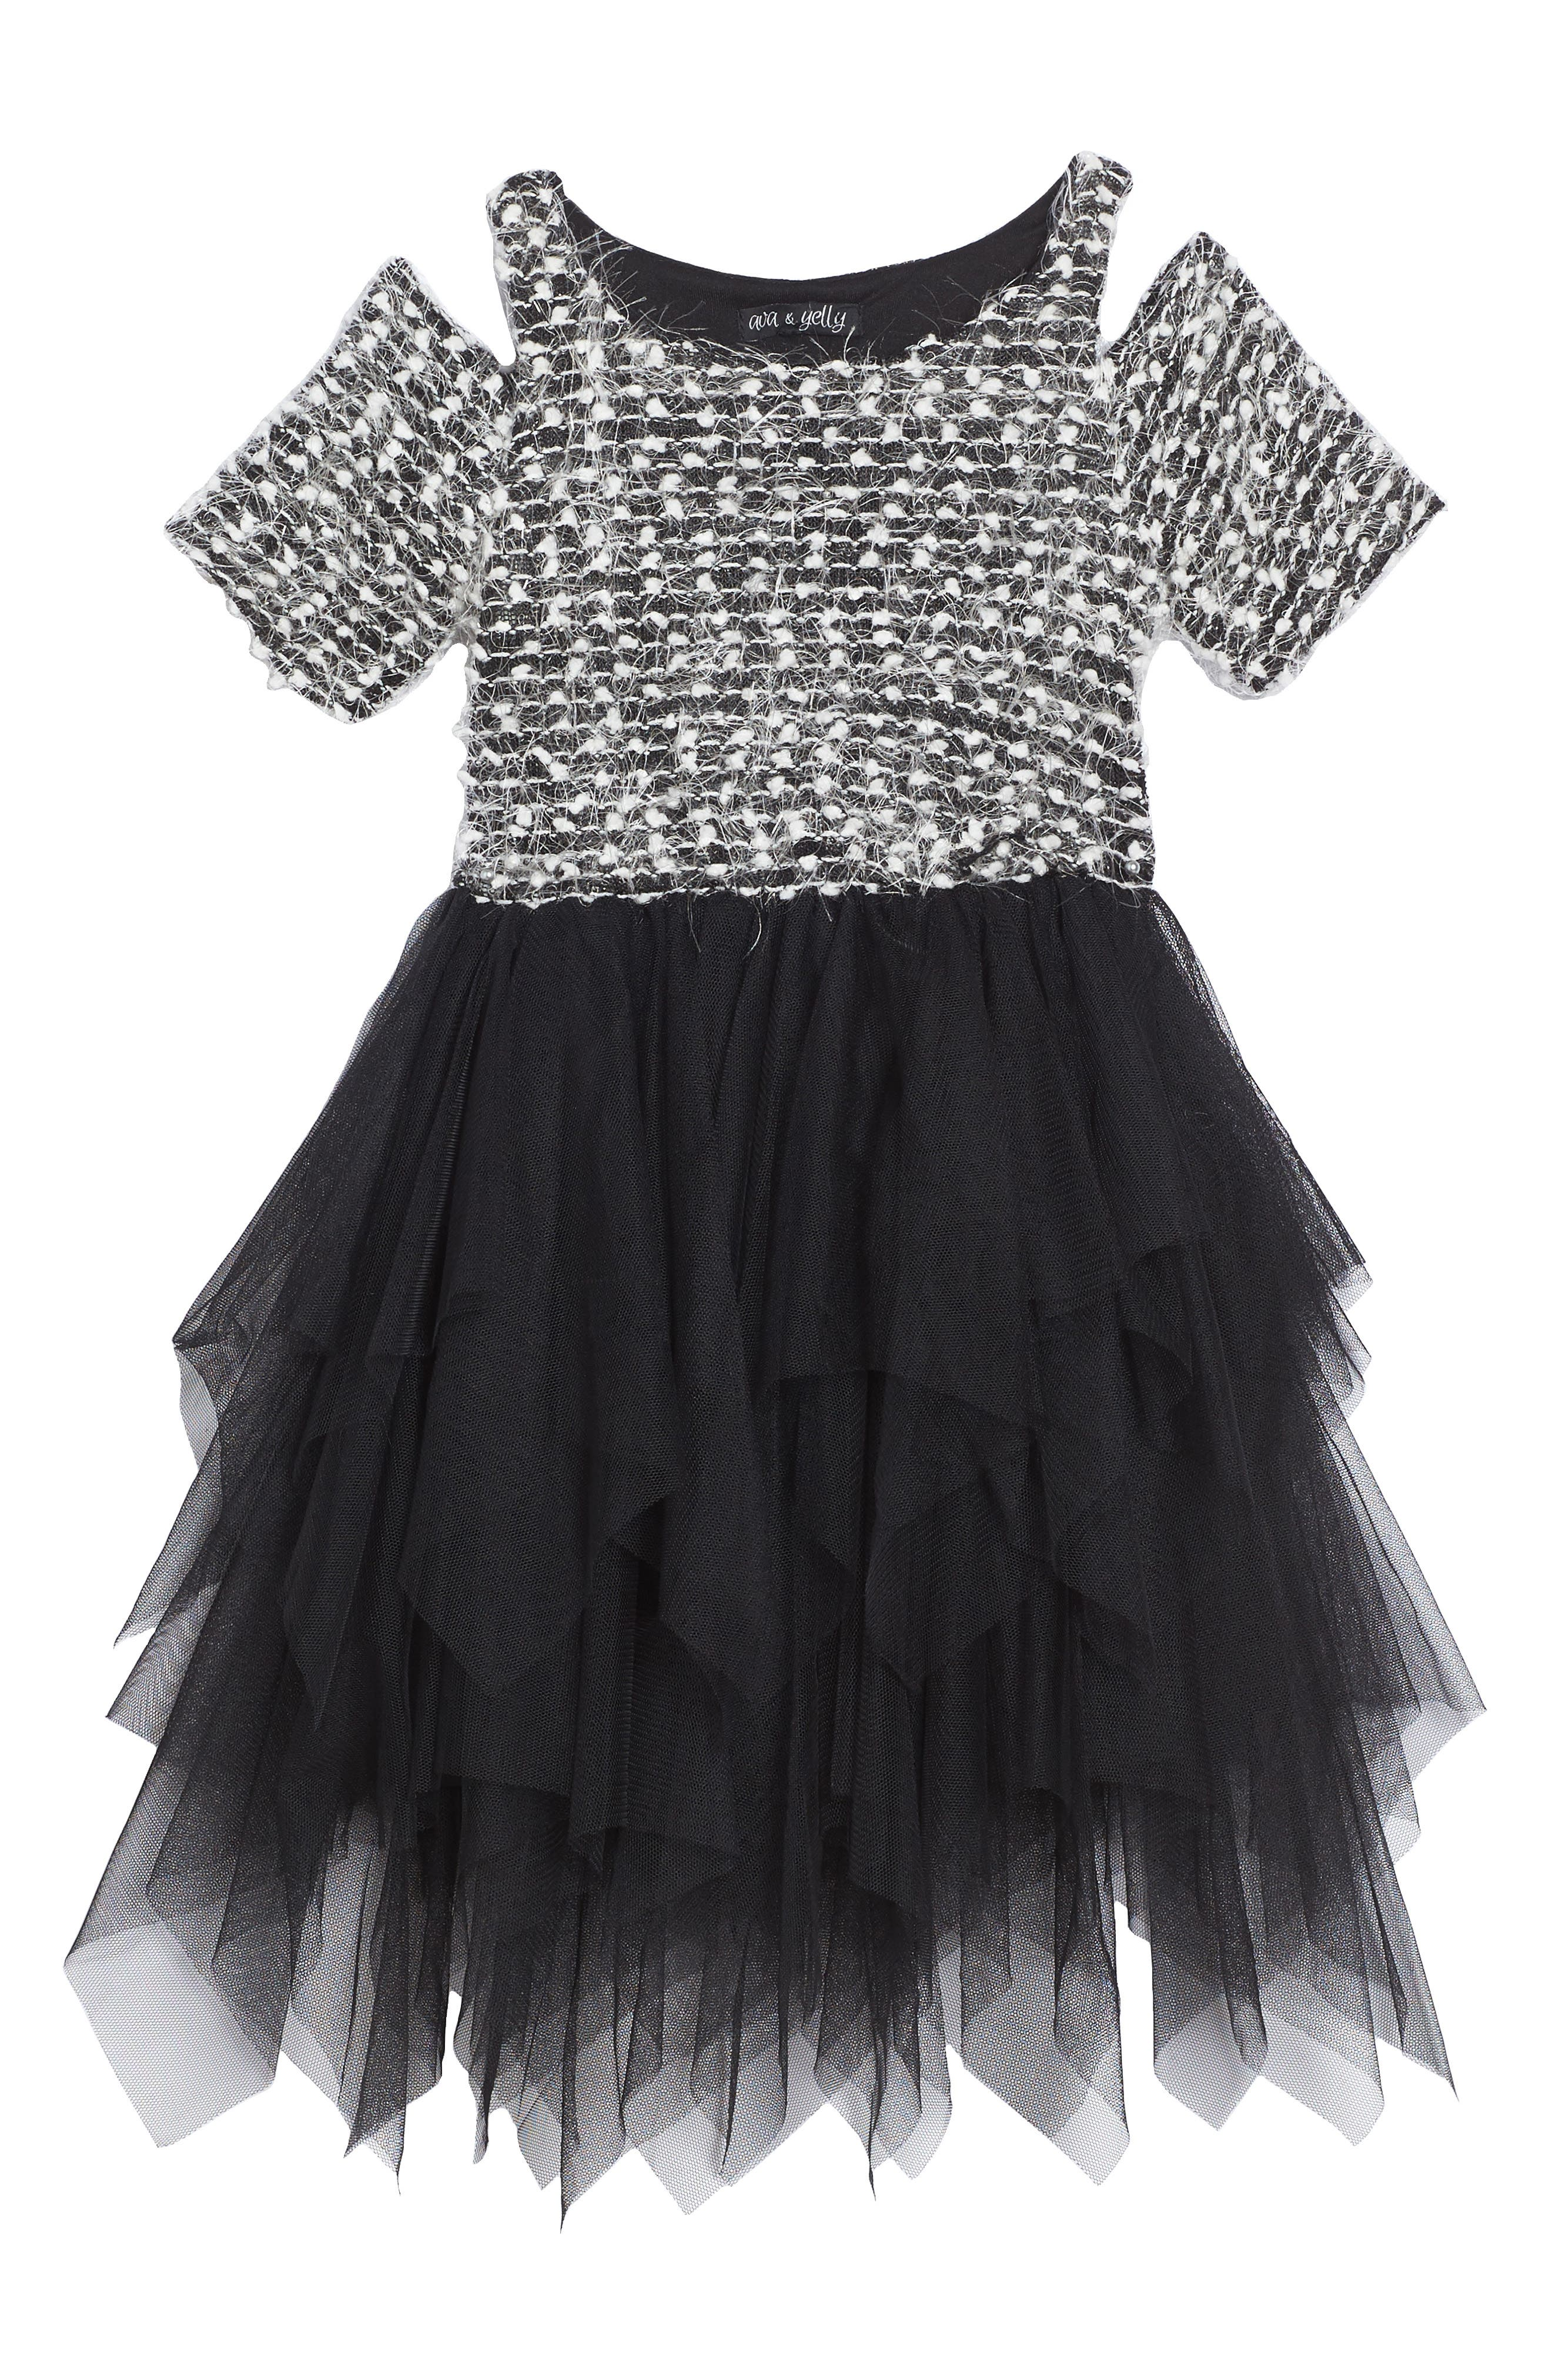 Main Image - Ava & Yelly Sweater Tutu Dress (Toddler Girls & Little Girls)